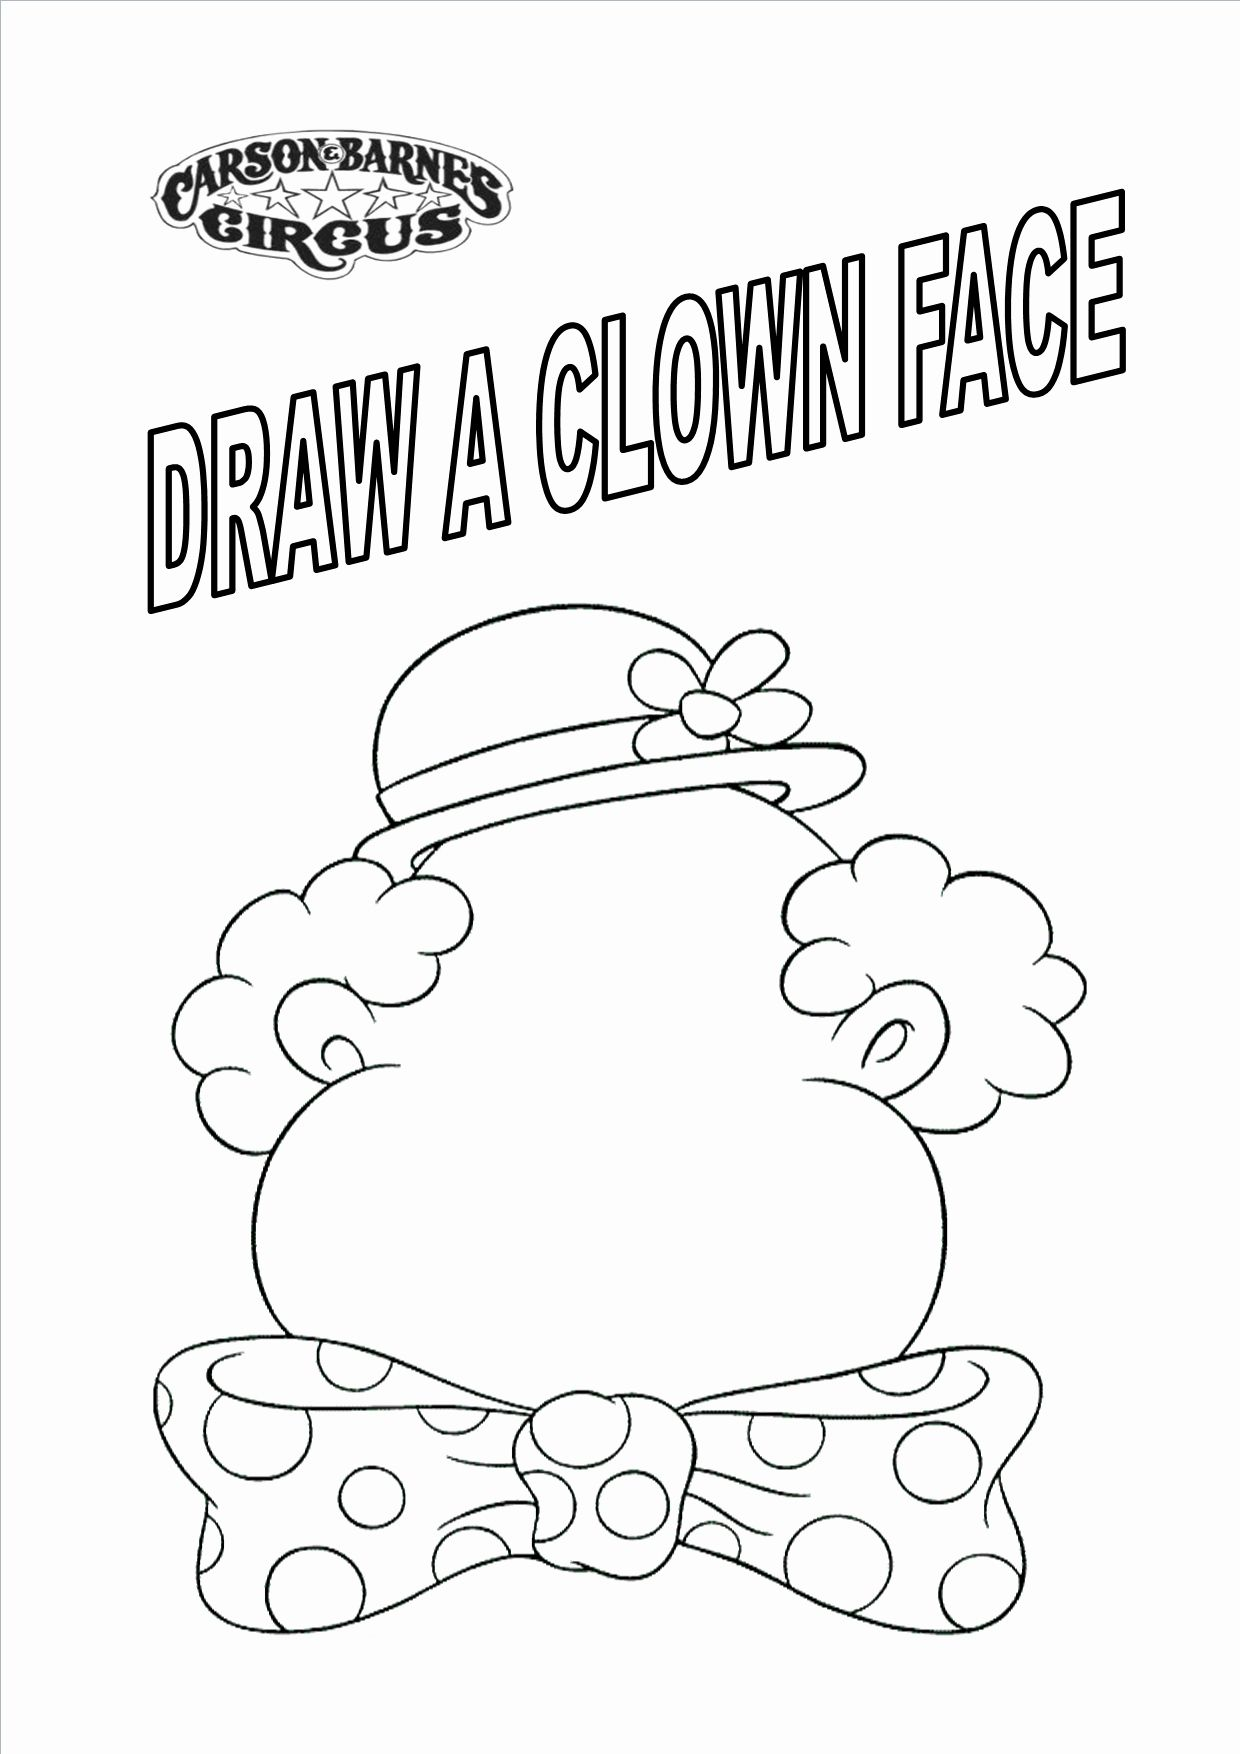 Free Circus Coloring Pages Awesome The Best Free Qqa Coloring Page Images Download From 123 Coloring Pages Clown Faces Free Printable Coloring Pages